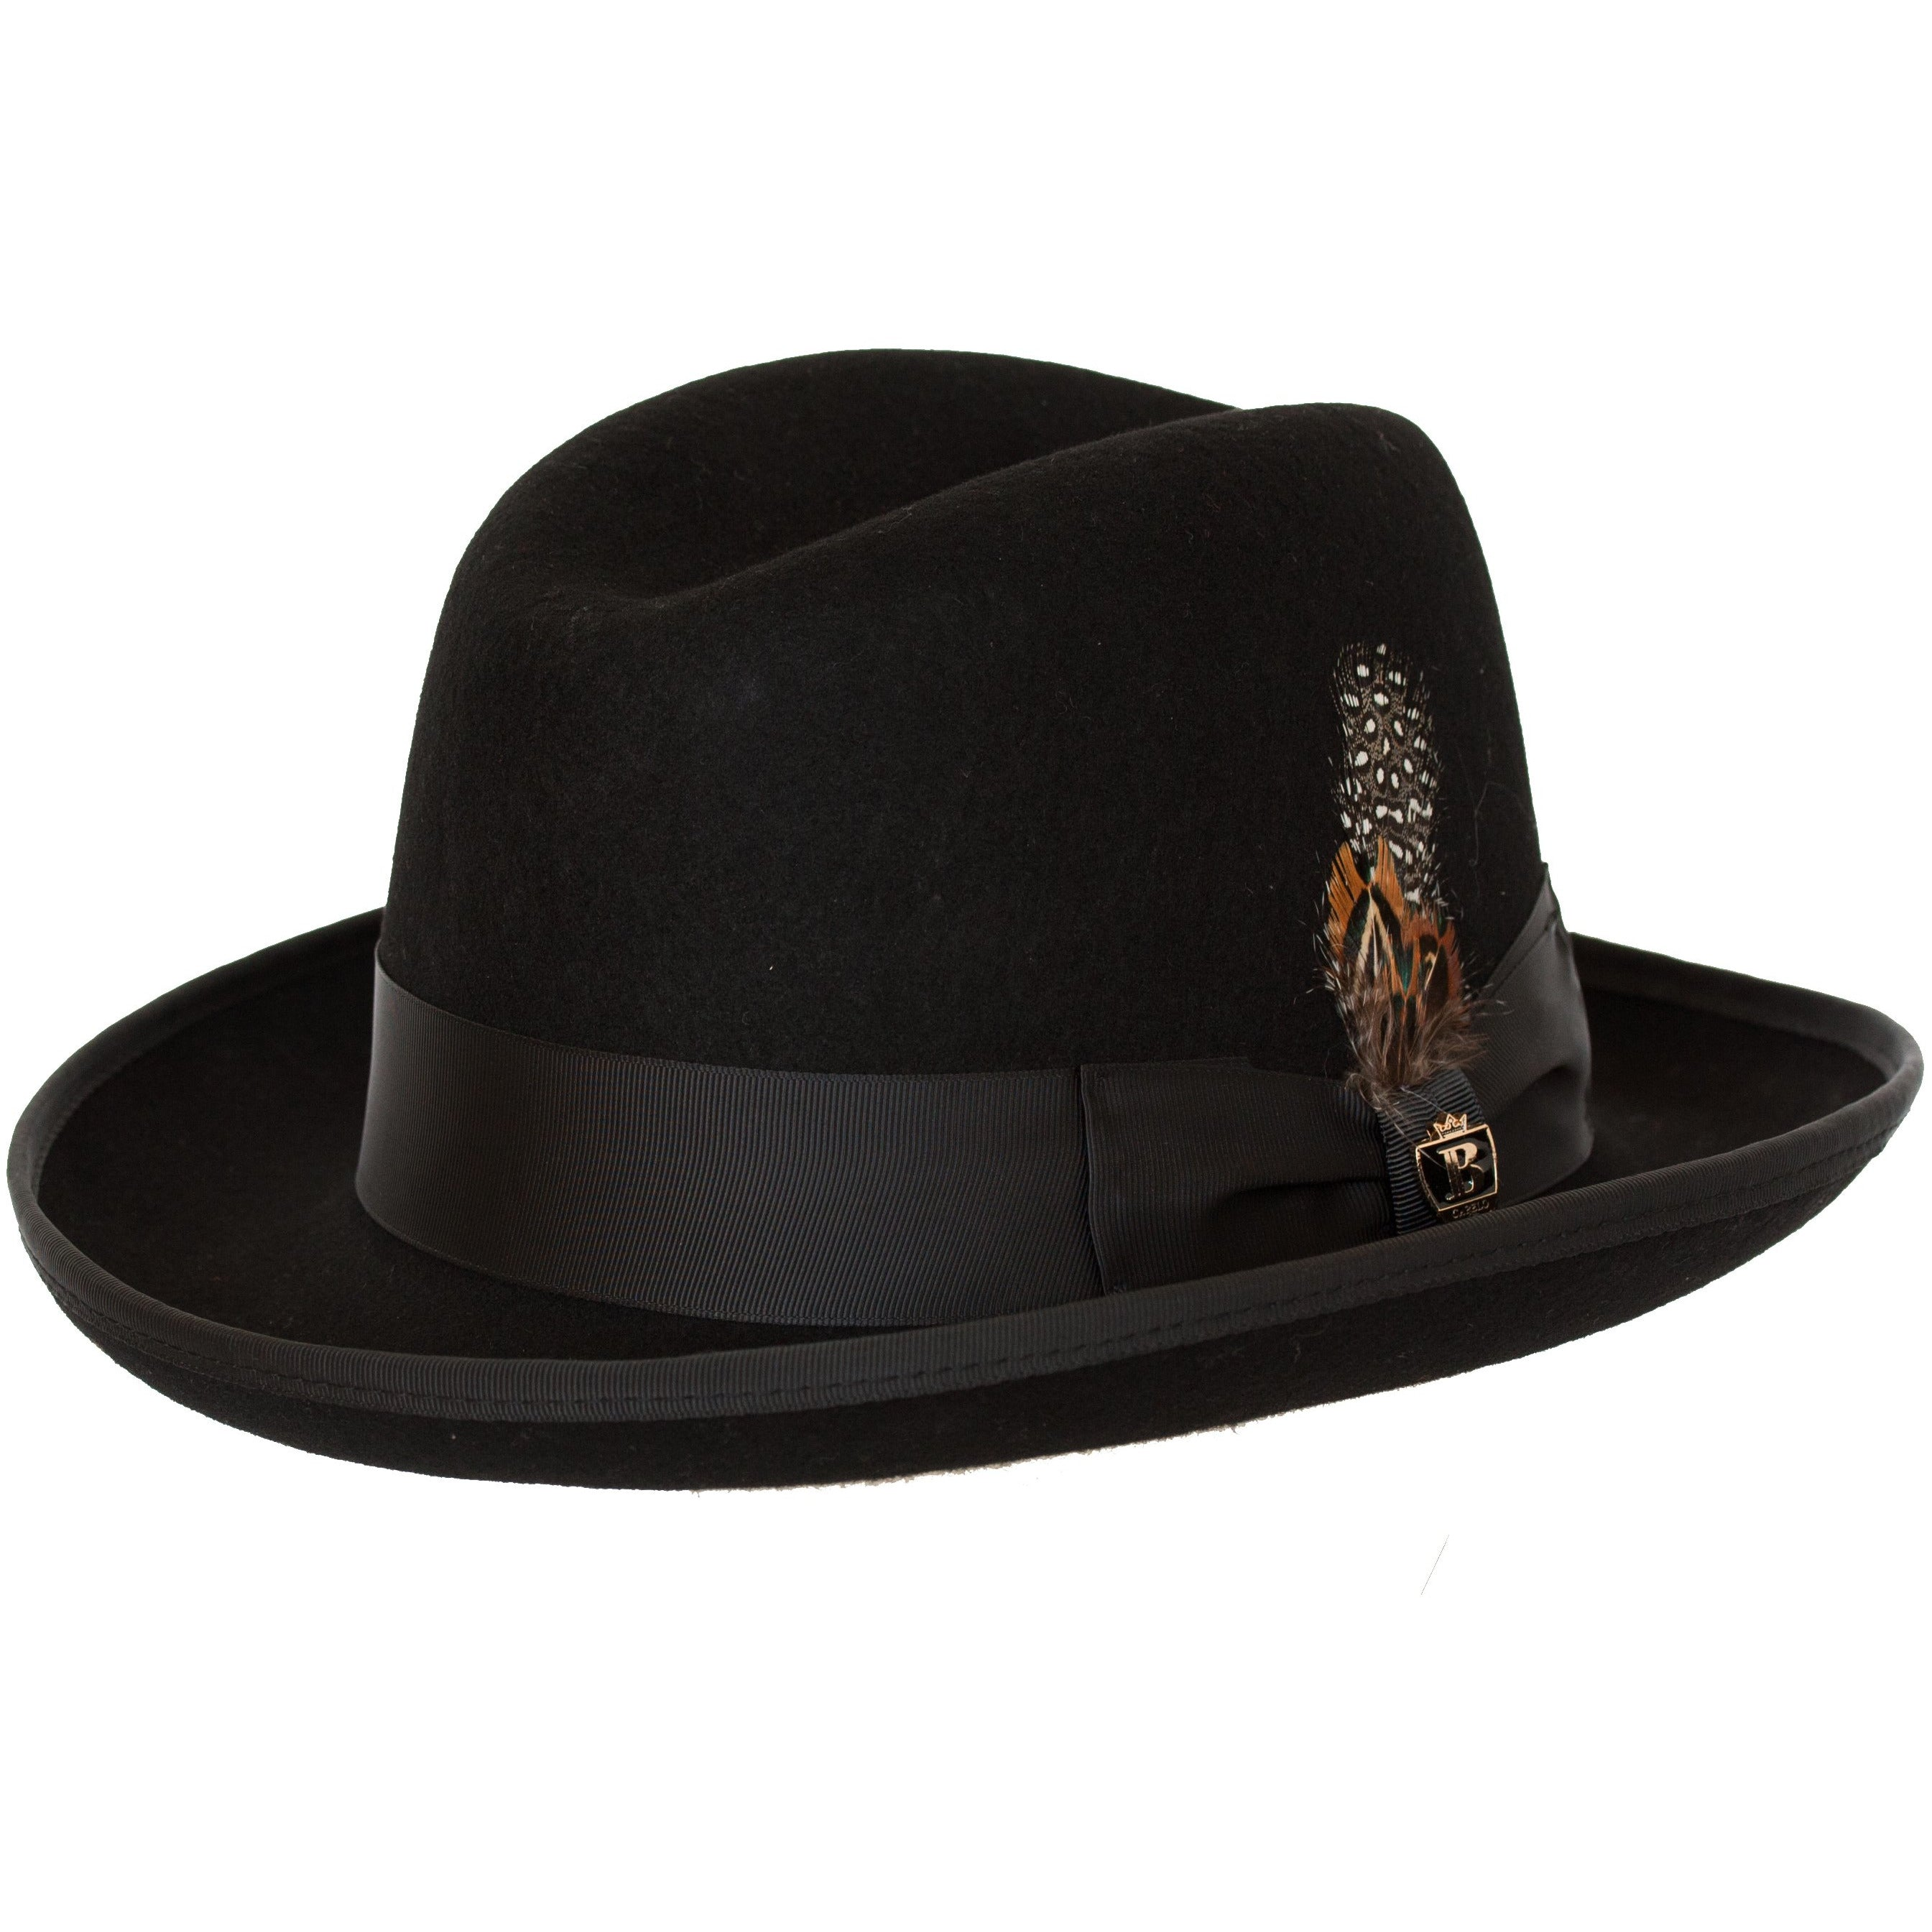 194ead6310b Godfather Firm Wool Felt Homburg by Bruno Capelo – Levine Hat Co.